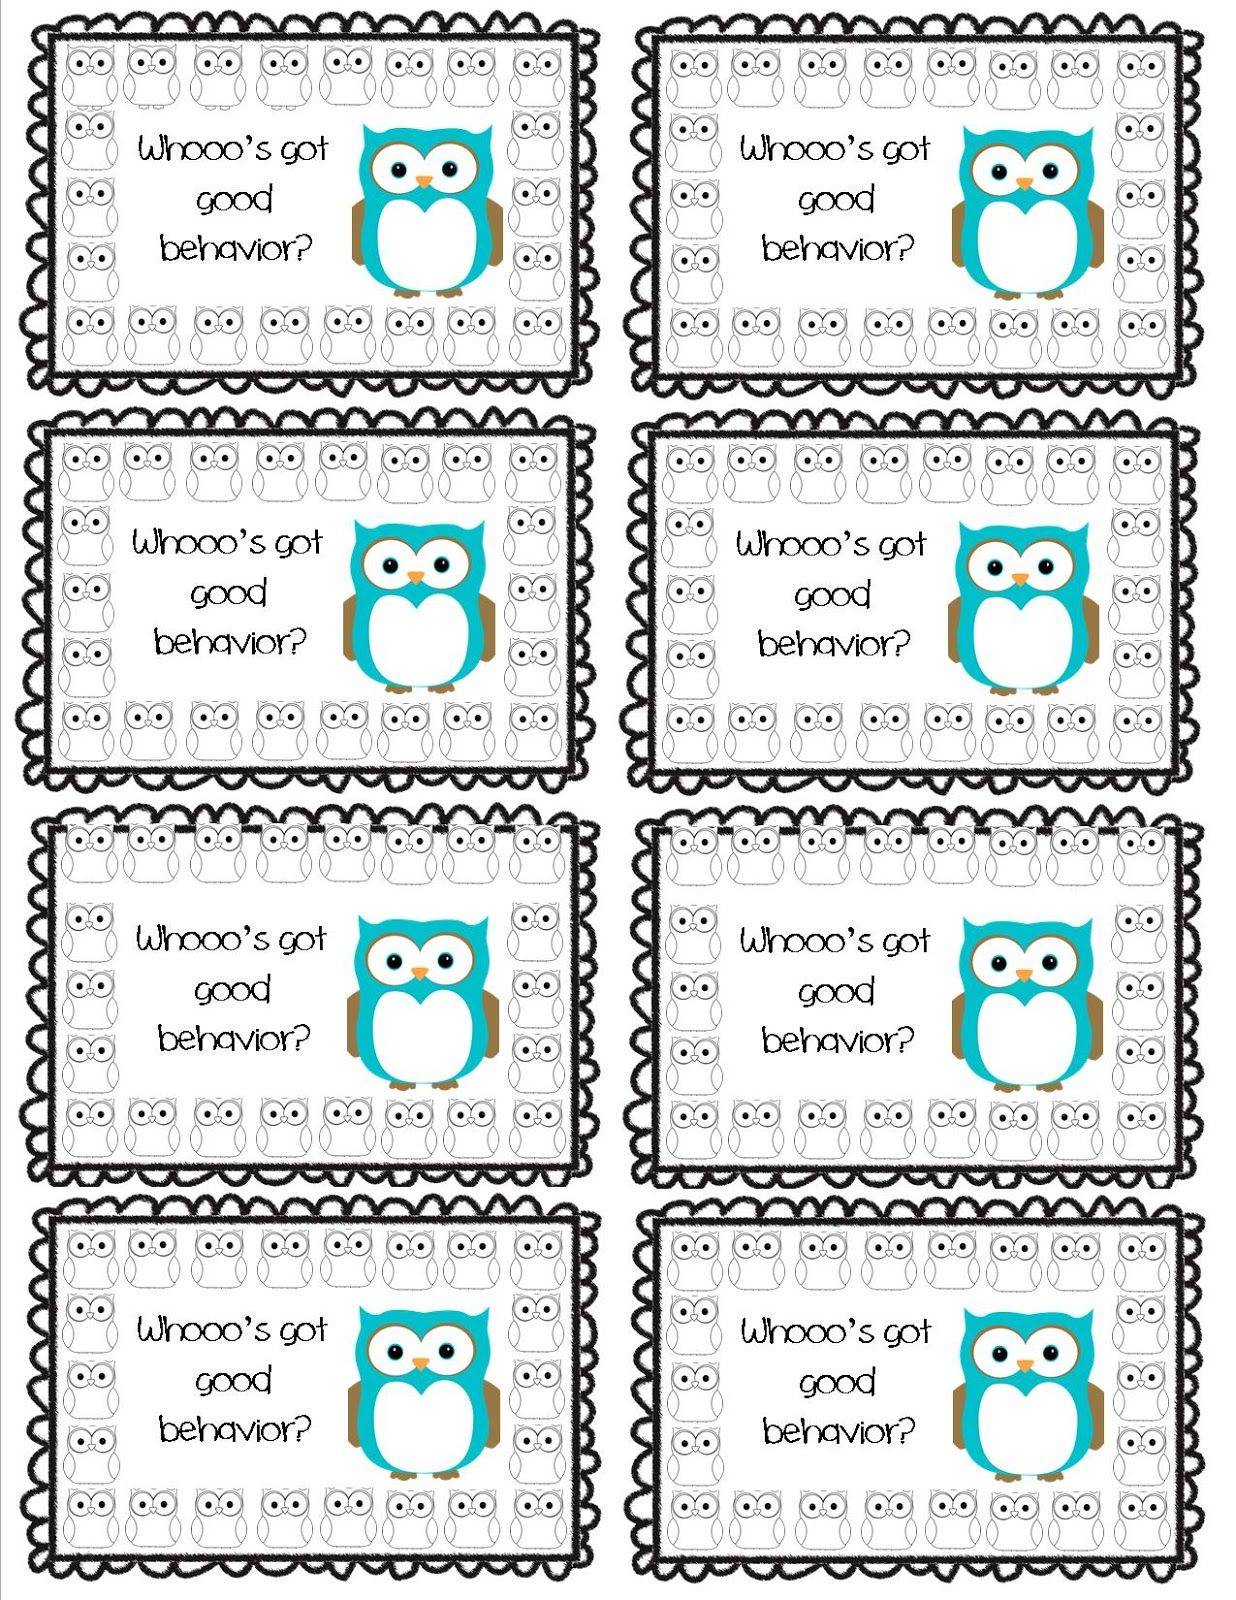 Keeping It Core Punch Cards And 2 Posts In 1 Day Giveaway Behavior Punch Cards Punch Cards Card Template